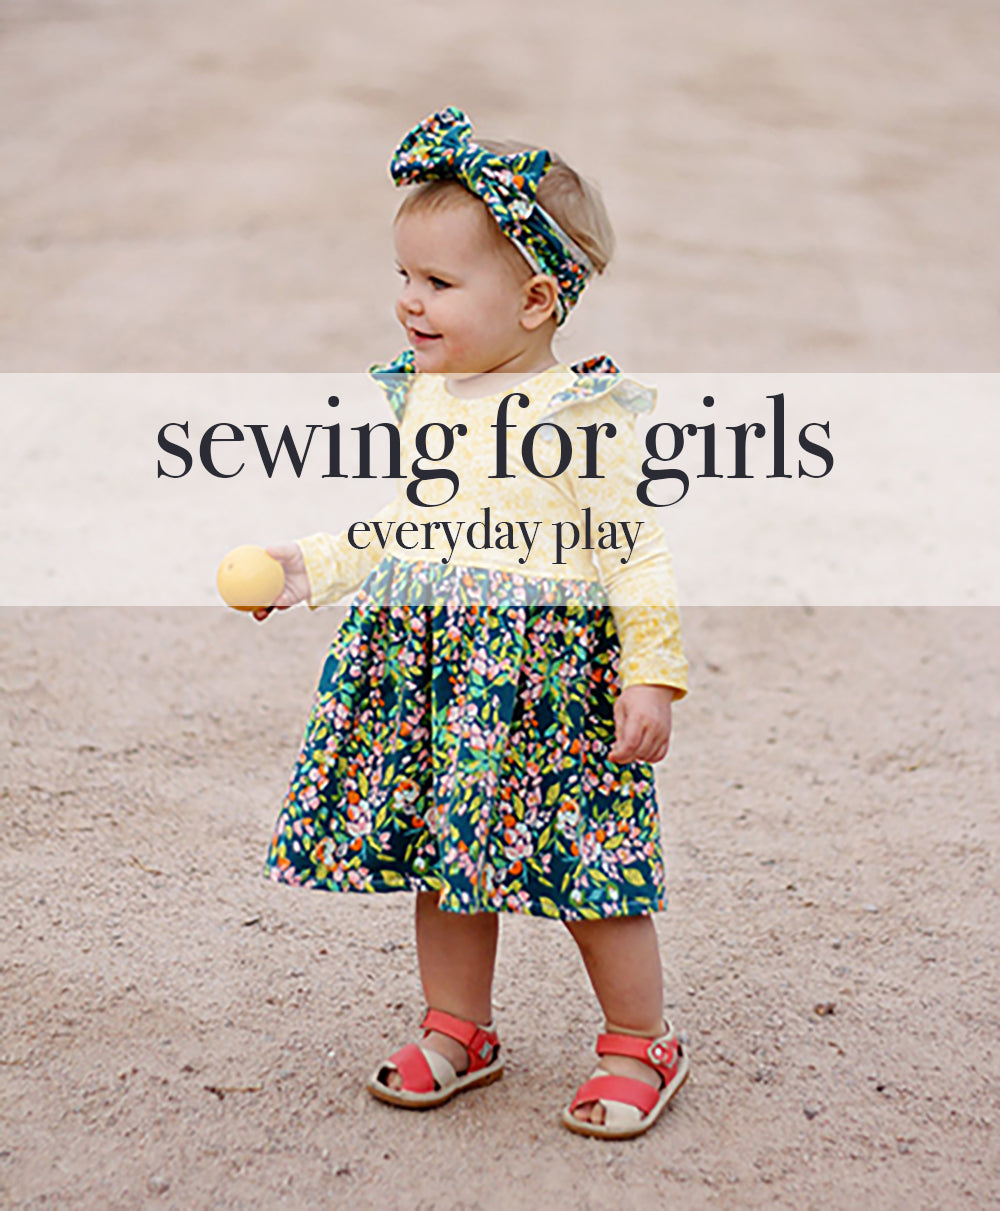 fdf98a93446424 Sewing for girls, everyday play! - Bari J. Designs